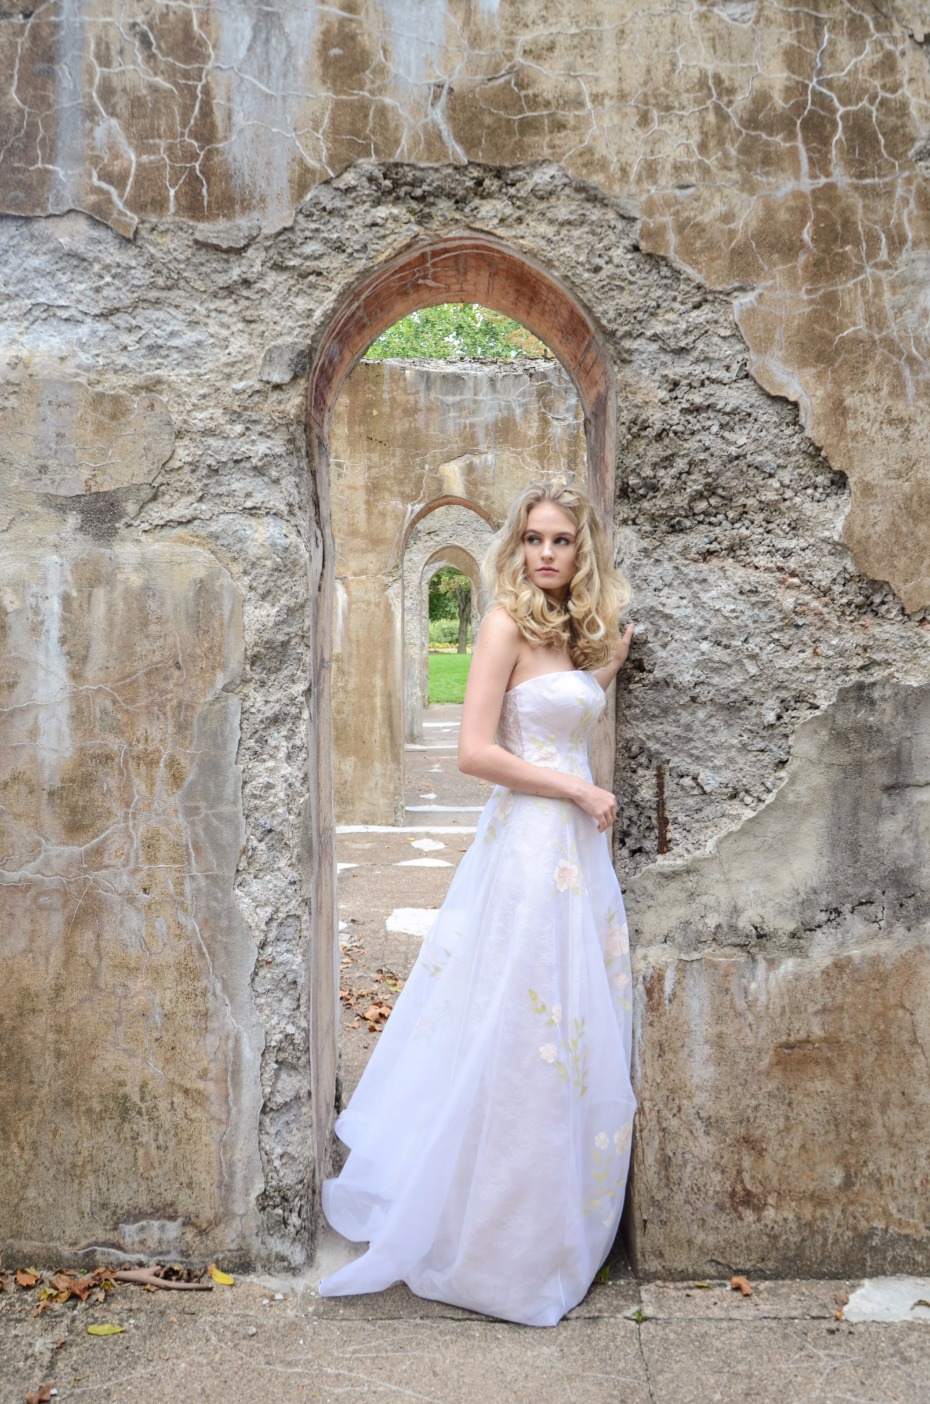 Find your dream dress with Barbara Kavchok